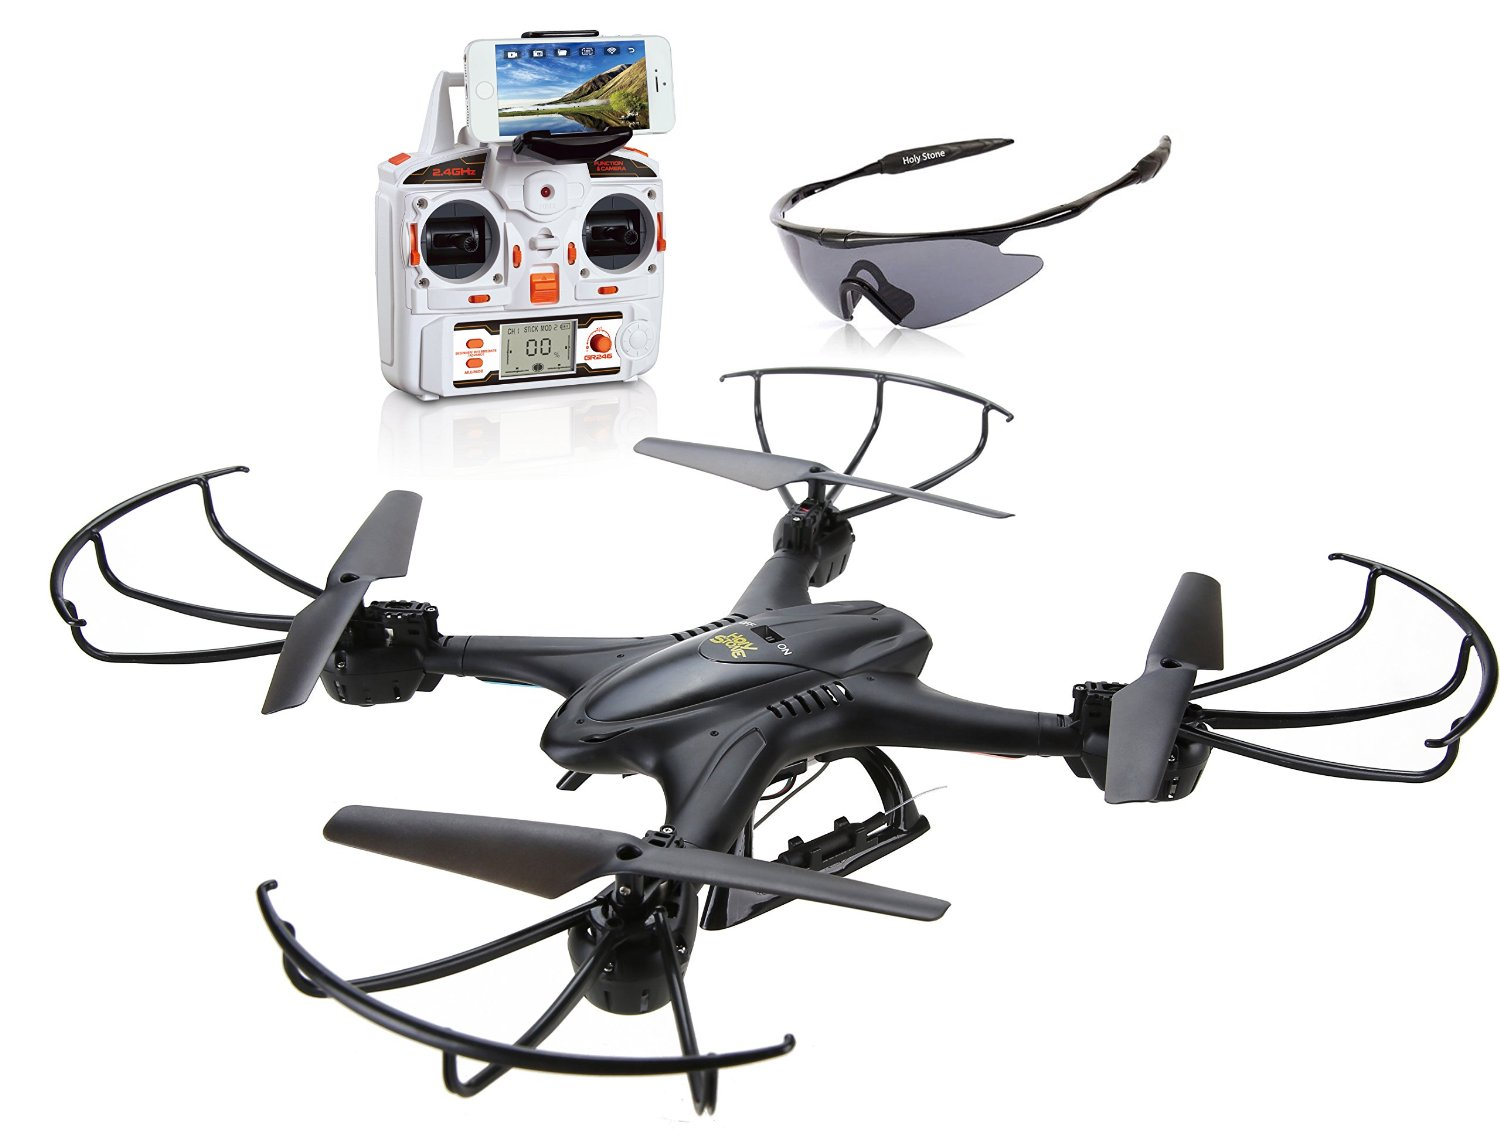 DEERC RC Quadrocopter